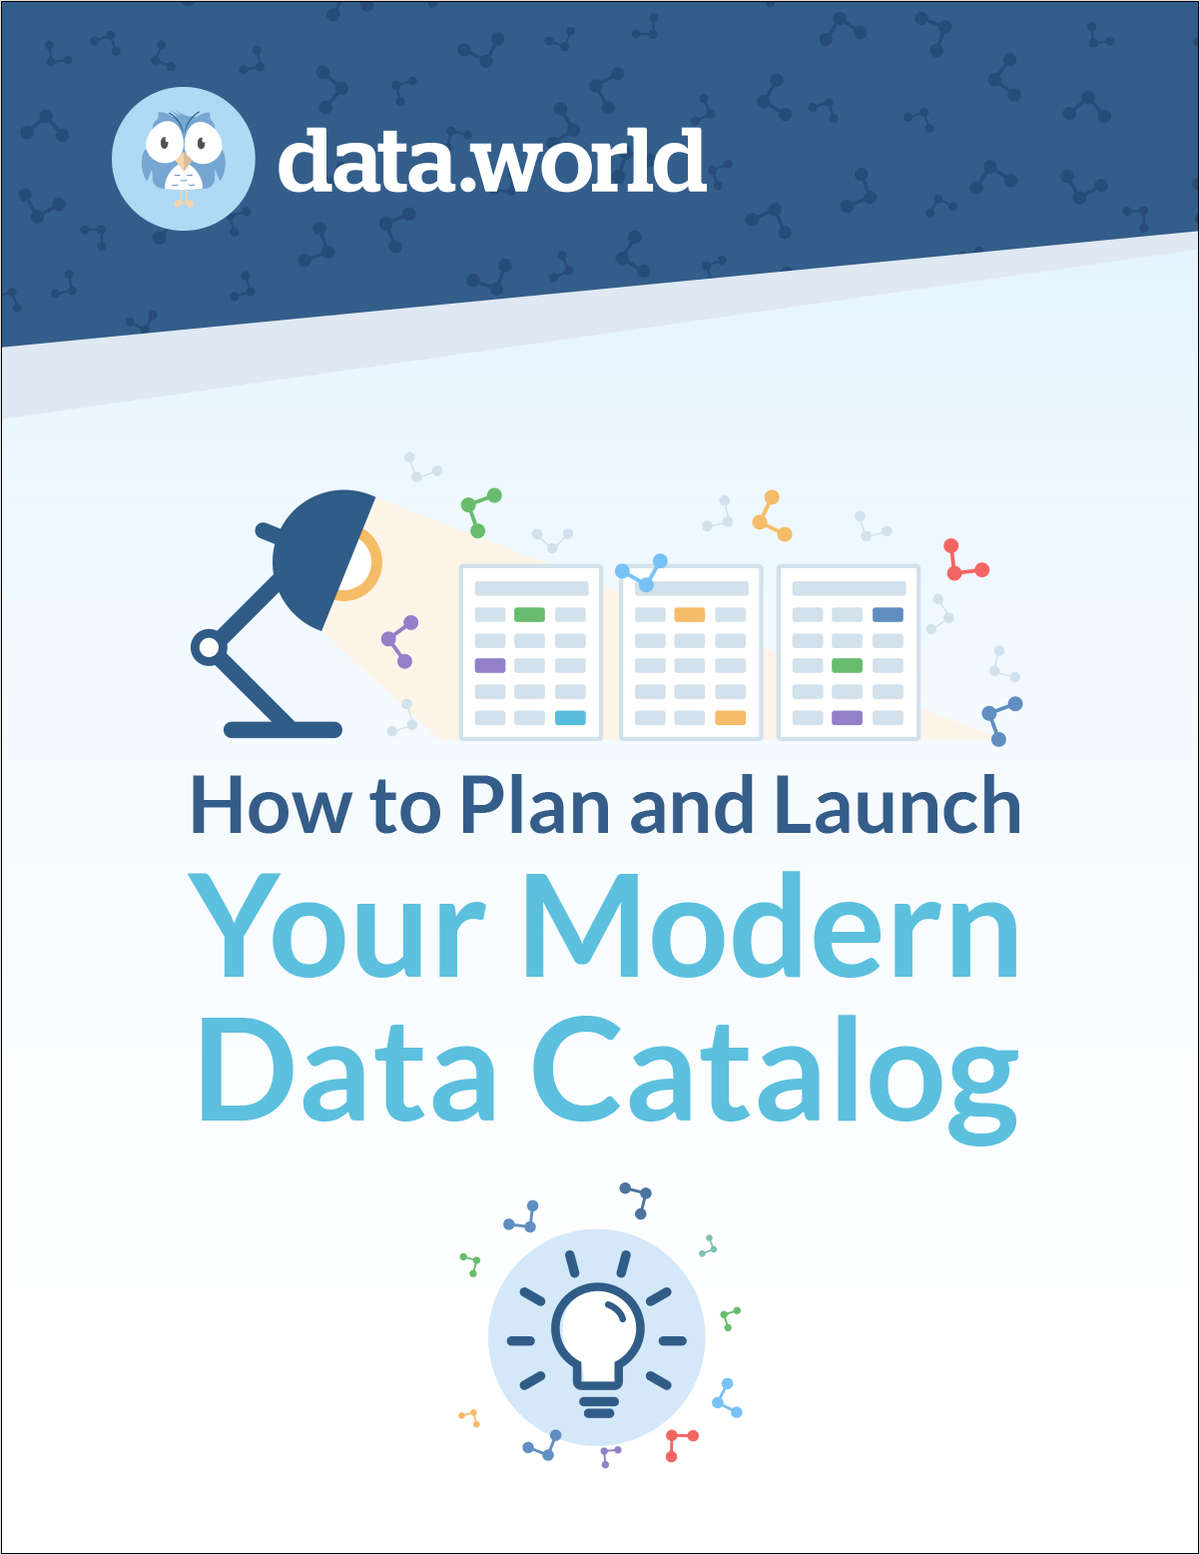 How to Plan and Launch Your Modern Data Catalog